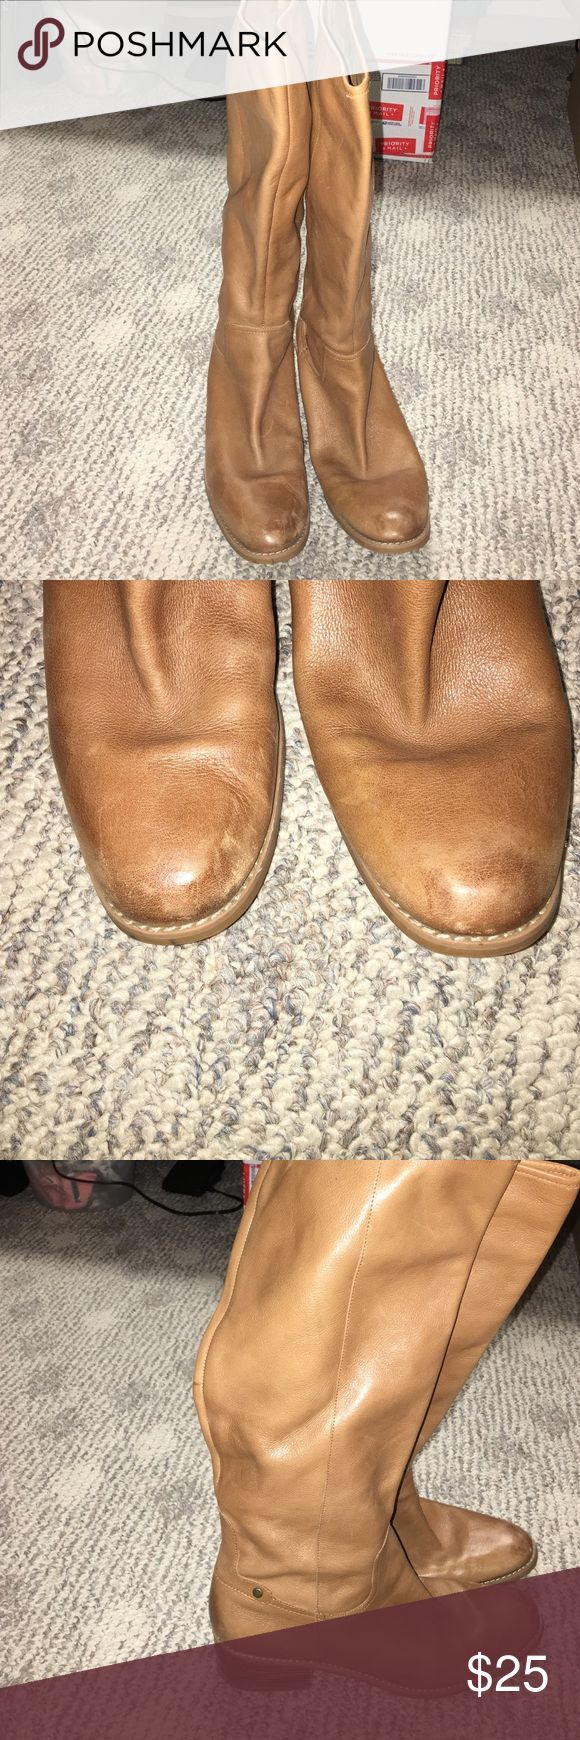 Tan leather boots Nine West tan leather boots. Very soft leather. Toes have a bit of scuffing (see pic).  Worn only a few times. Nine West Shoes Ankle Boots & Booties